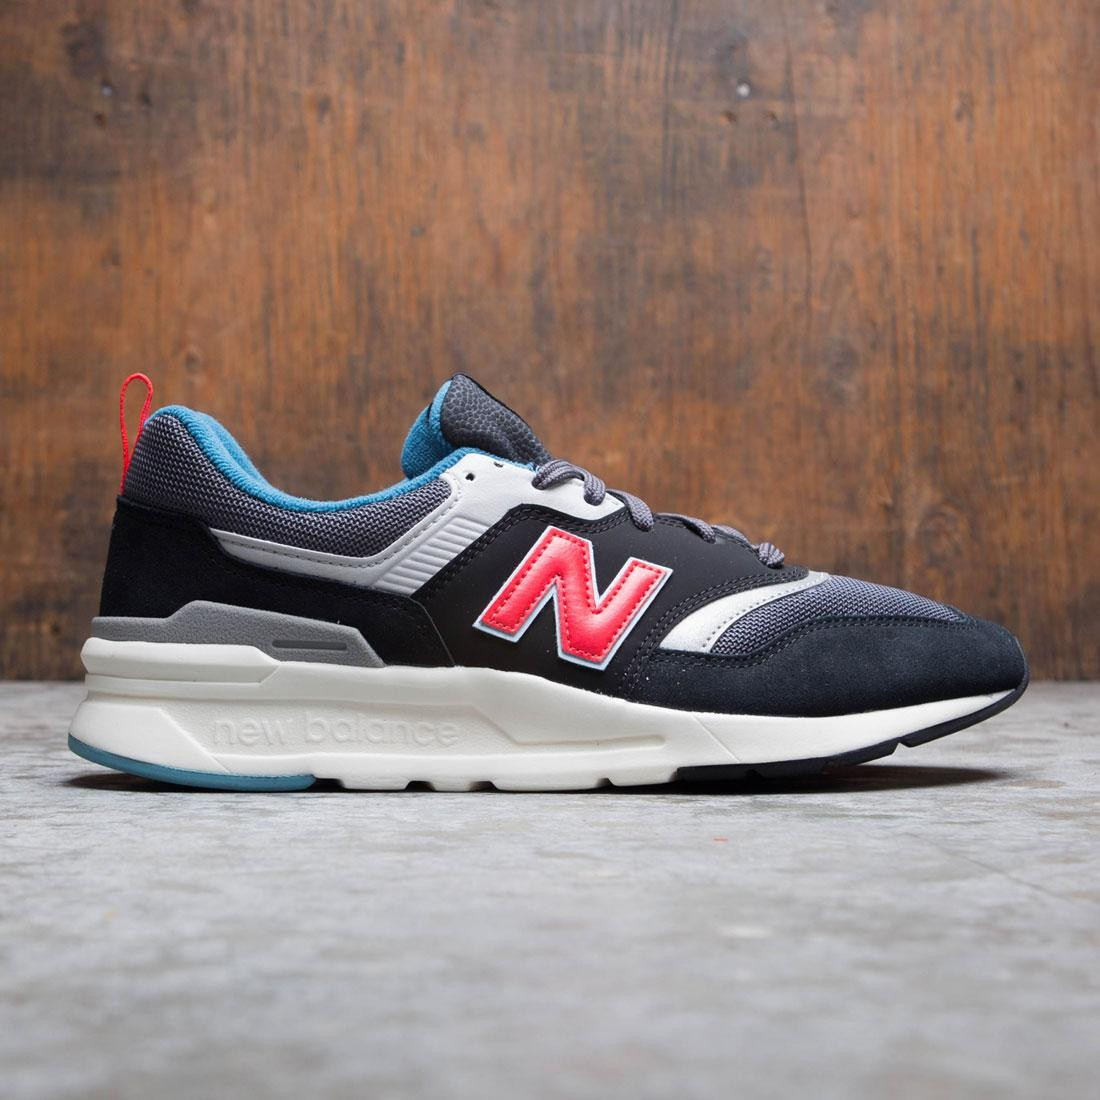 check out 8460c 8d6e5 New Balance Men 997 CM997HAI (black / magnet / energy red)